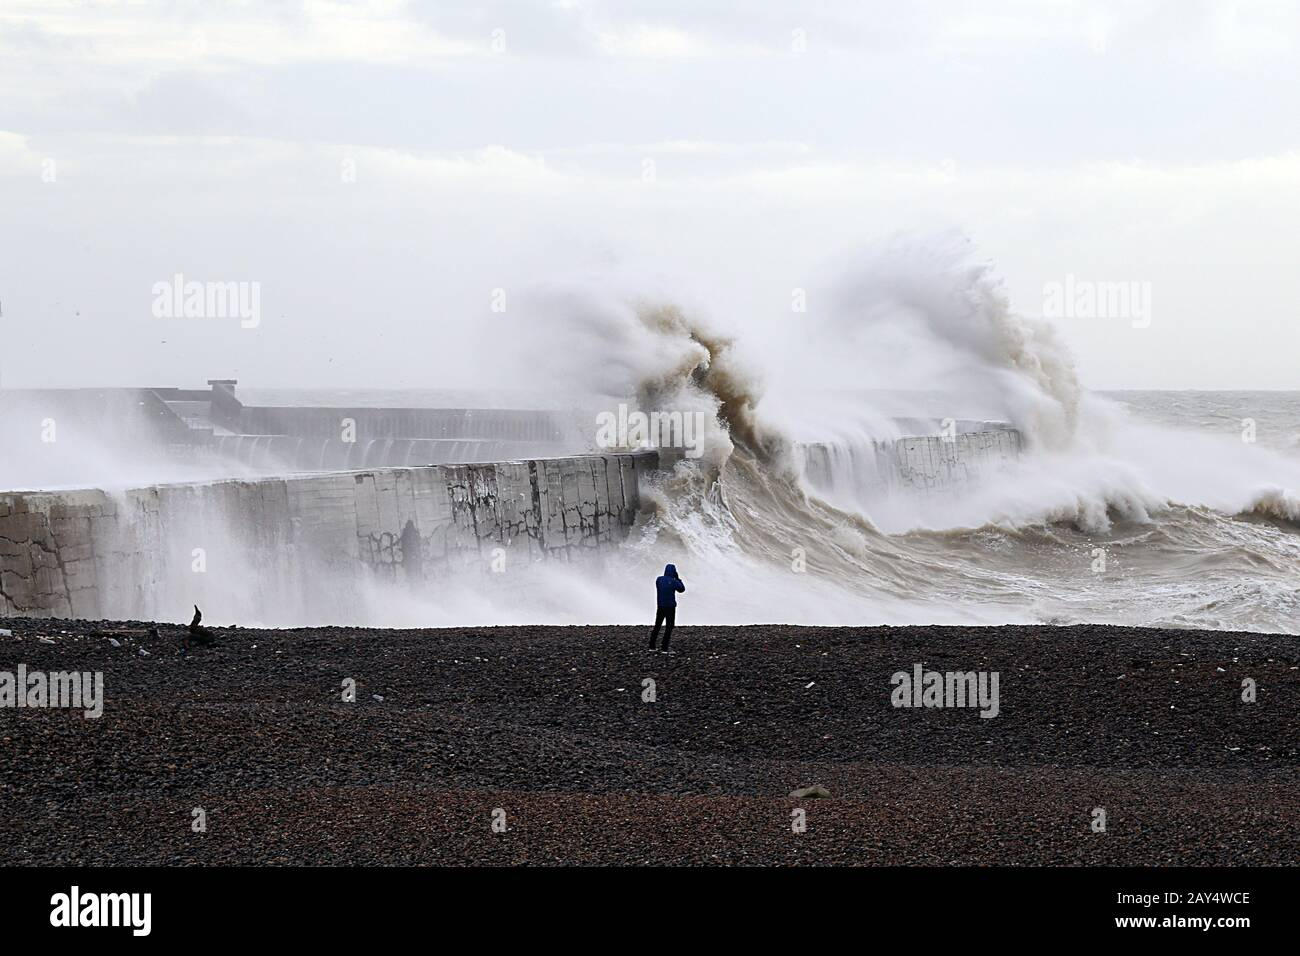 Giant waves crash against the breakwater after storm Ciara, at Newhaven East Sussex UK Stock Photo